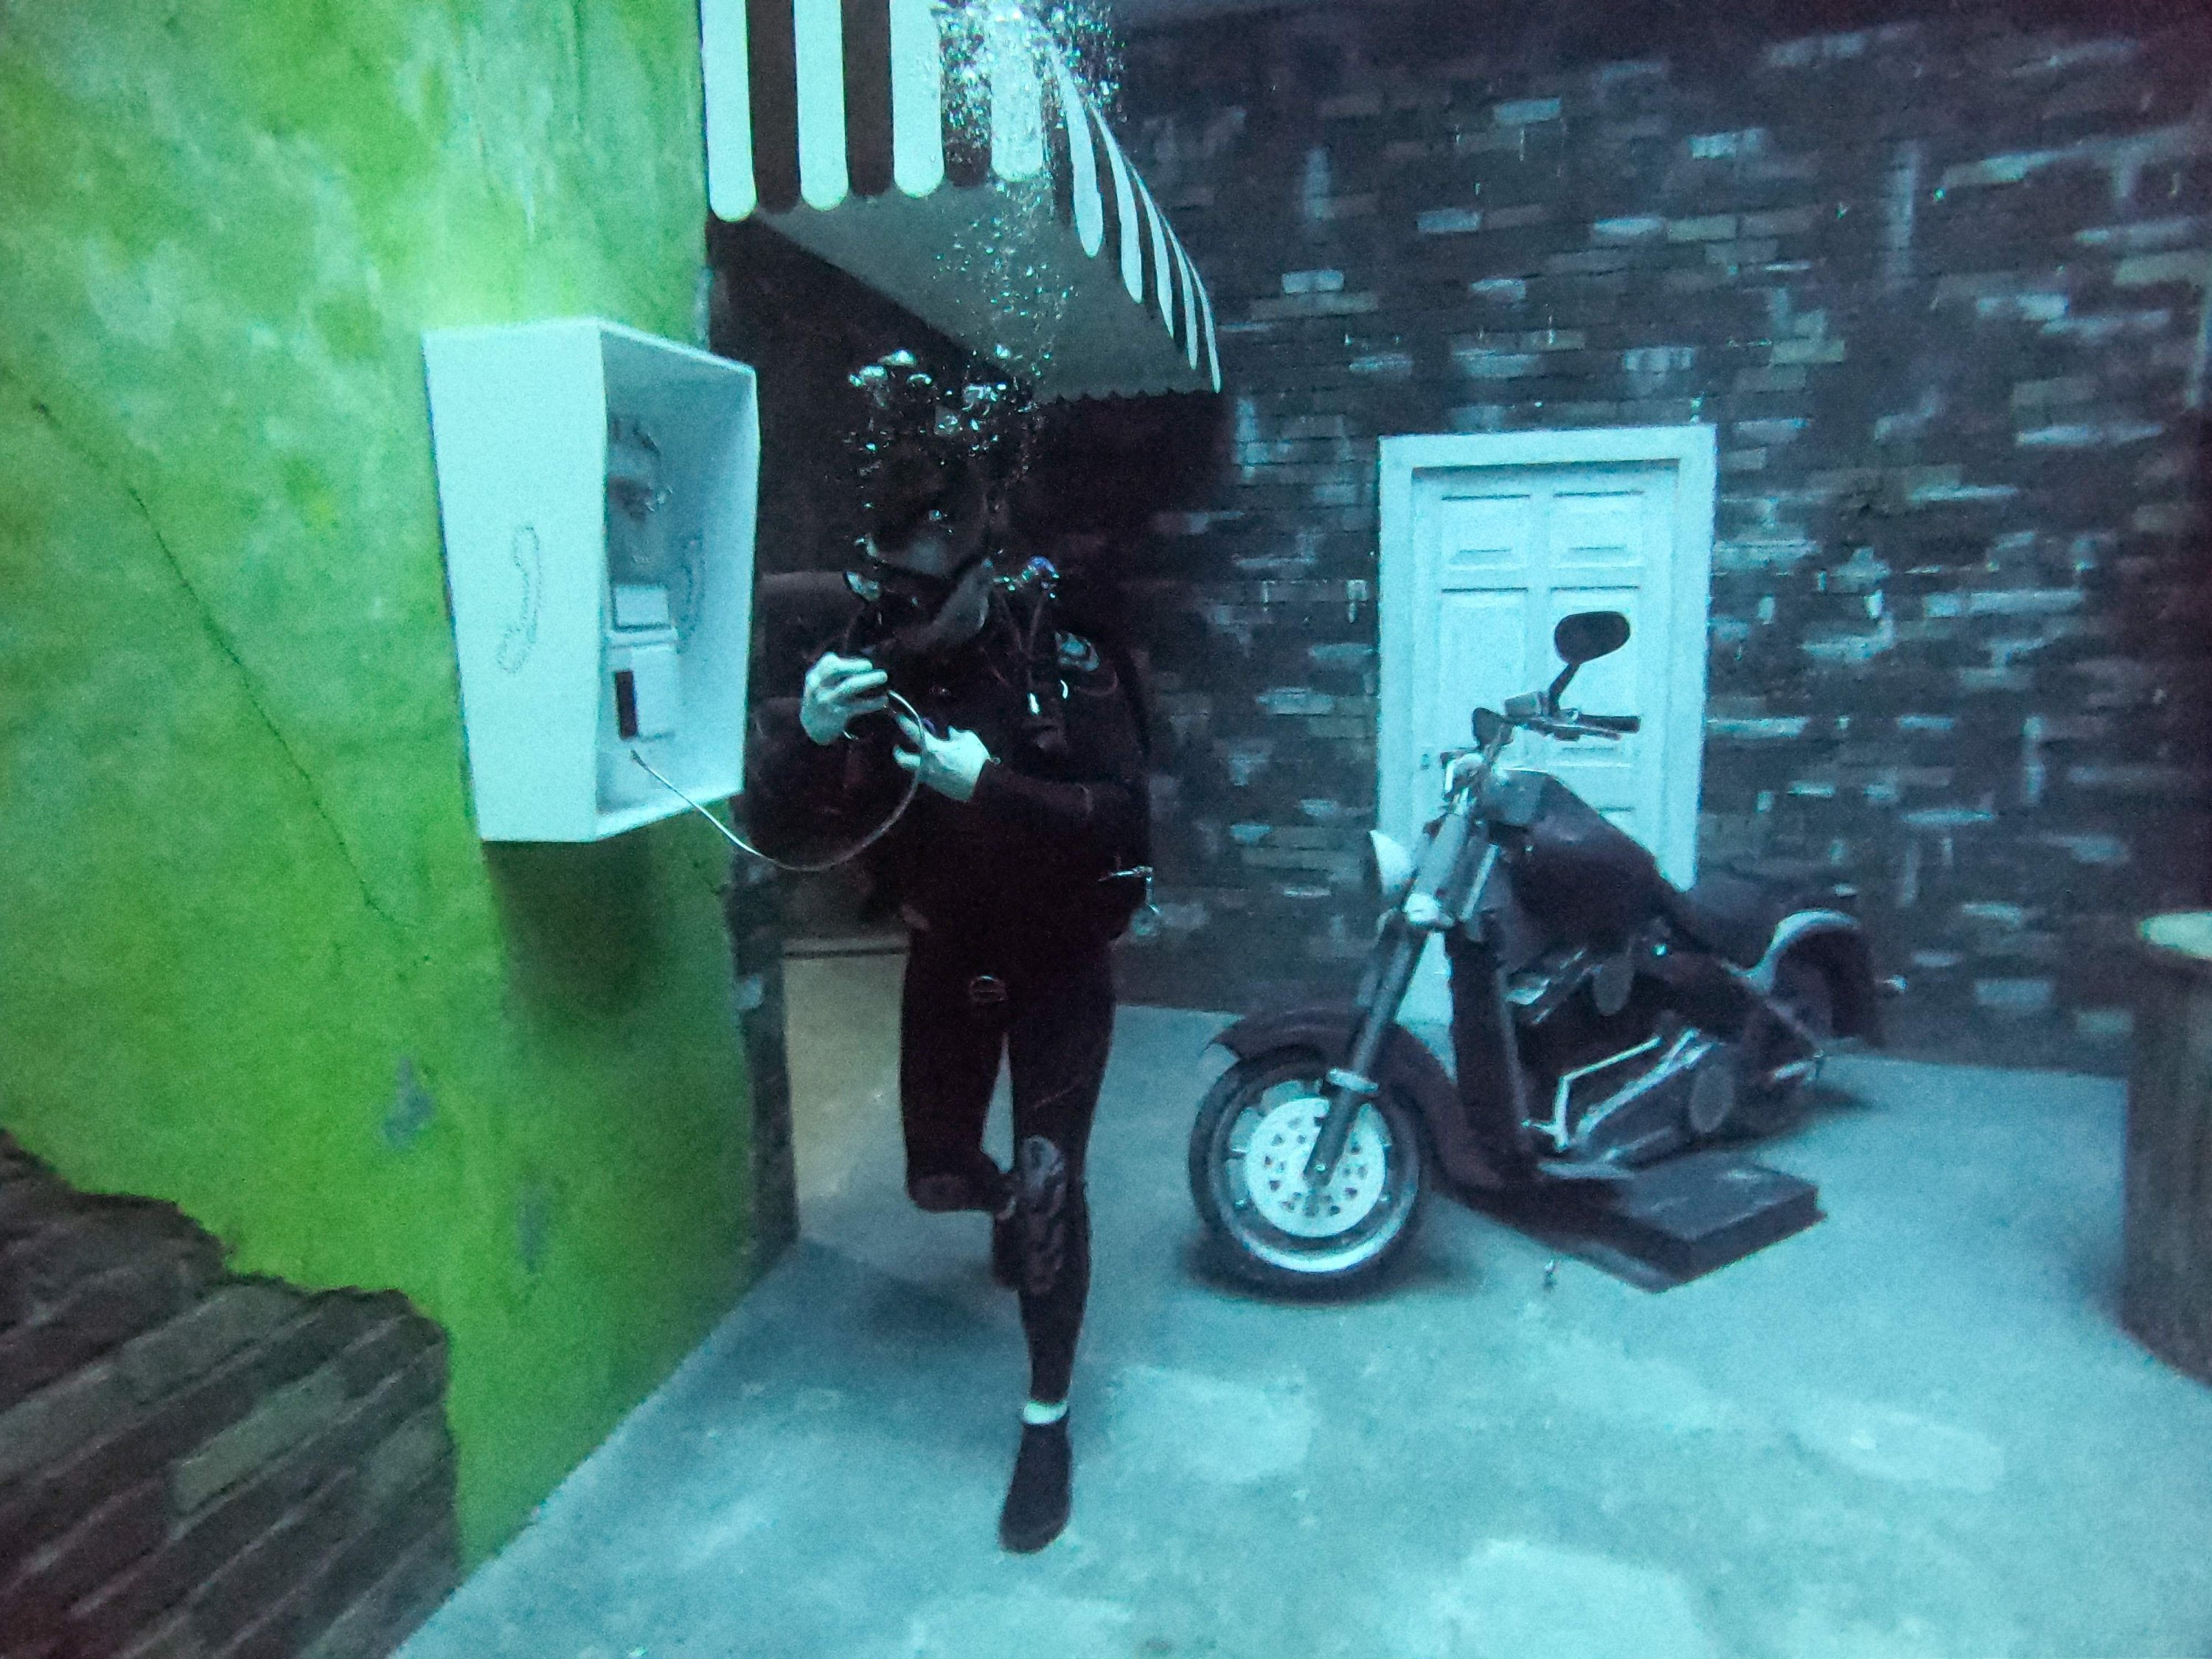 A diver uses a mock public phone as he experiences Deep Dive Dubai, the deepest swimming pool in the world reaching 60 meters (nearly 200 feet), in the United Arab Emirates, July 10, 2021. (AFP Photo)